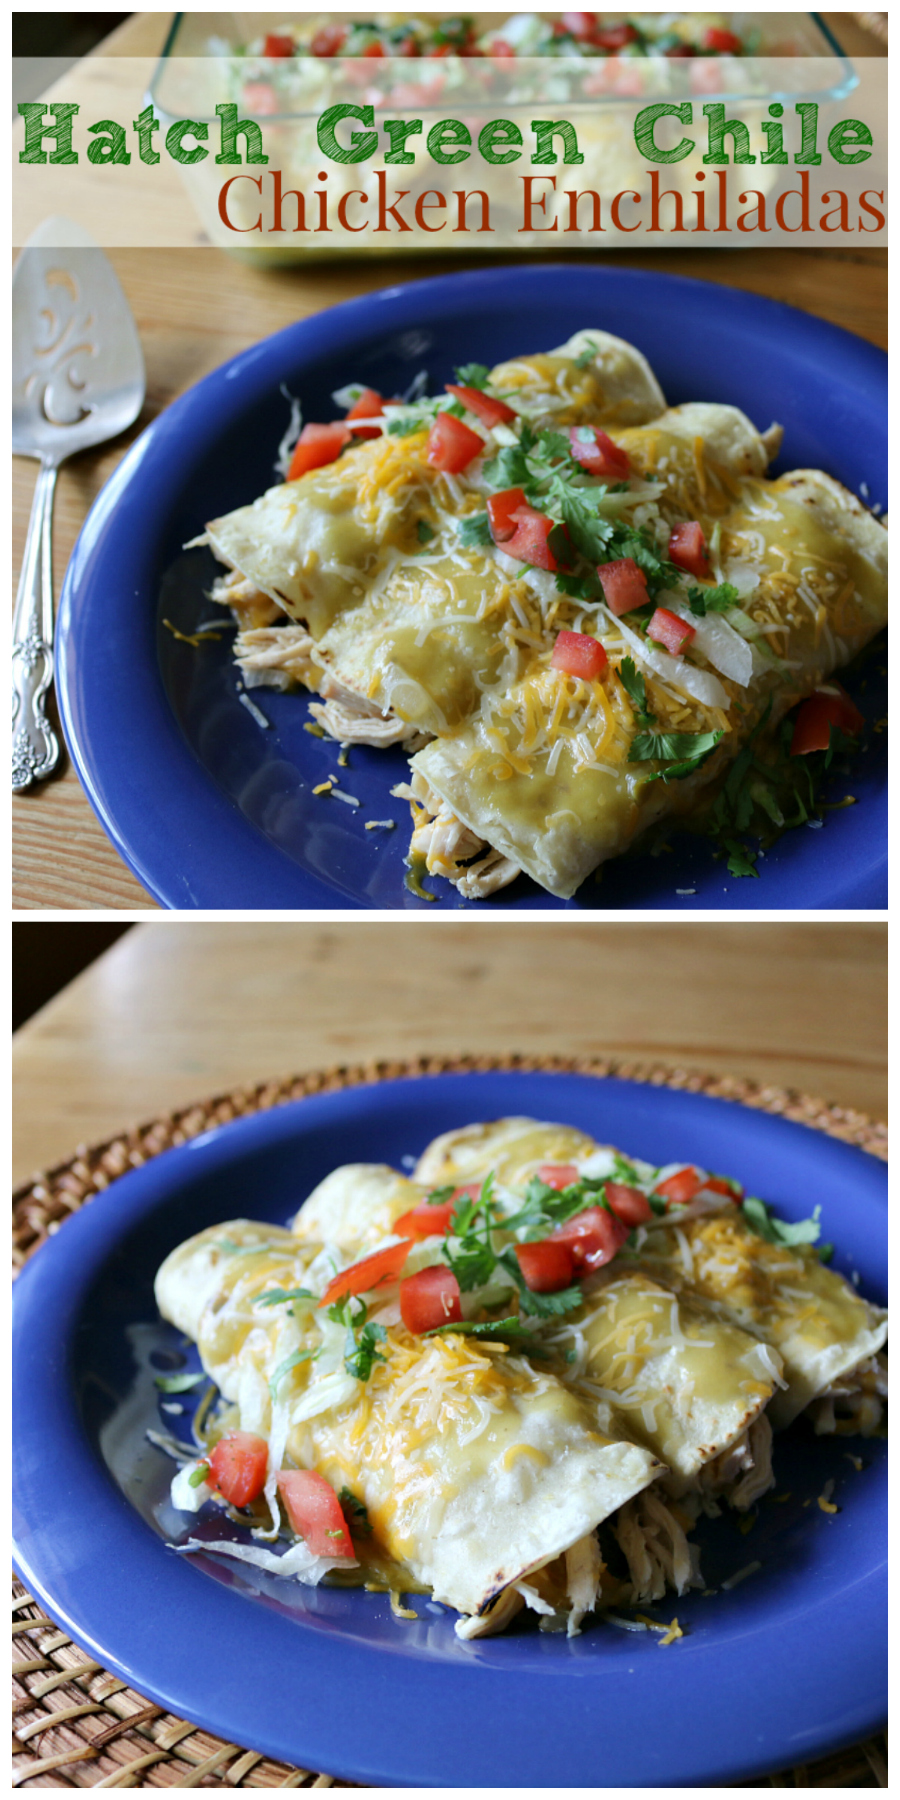 Hatch Green Chile Chicken Enchiladas | CeceliasGoodStuff.com | Good Food for Good People